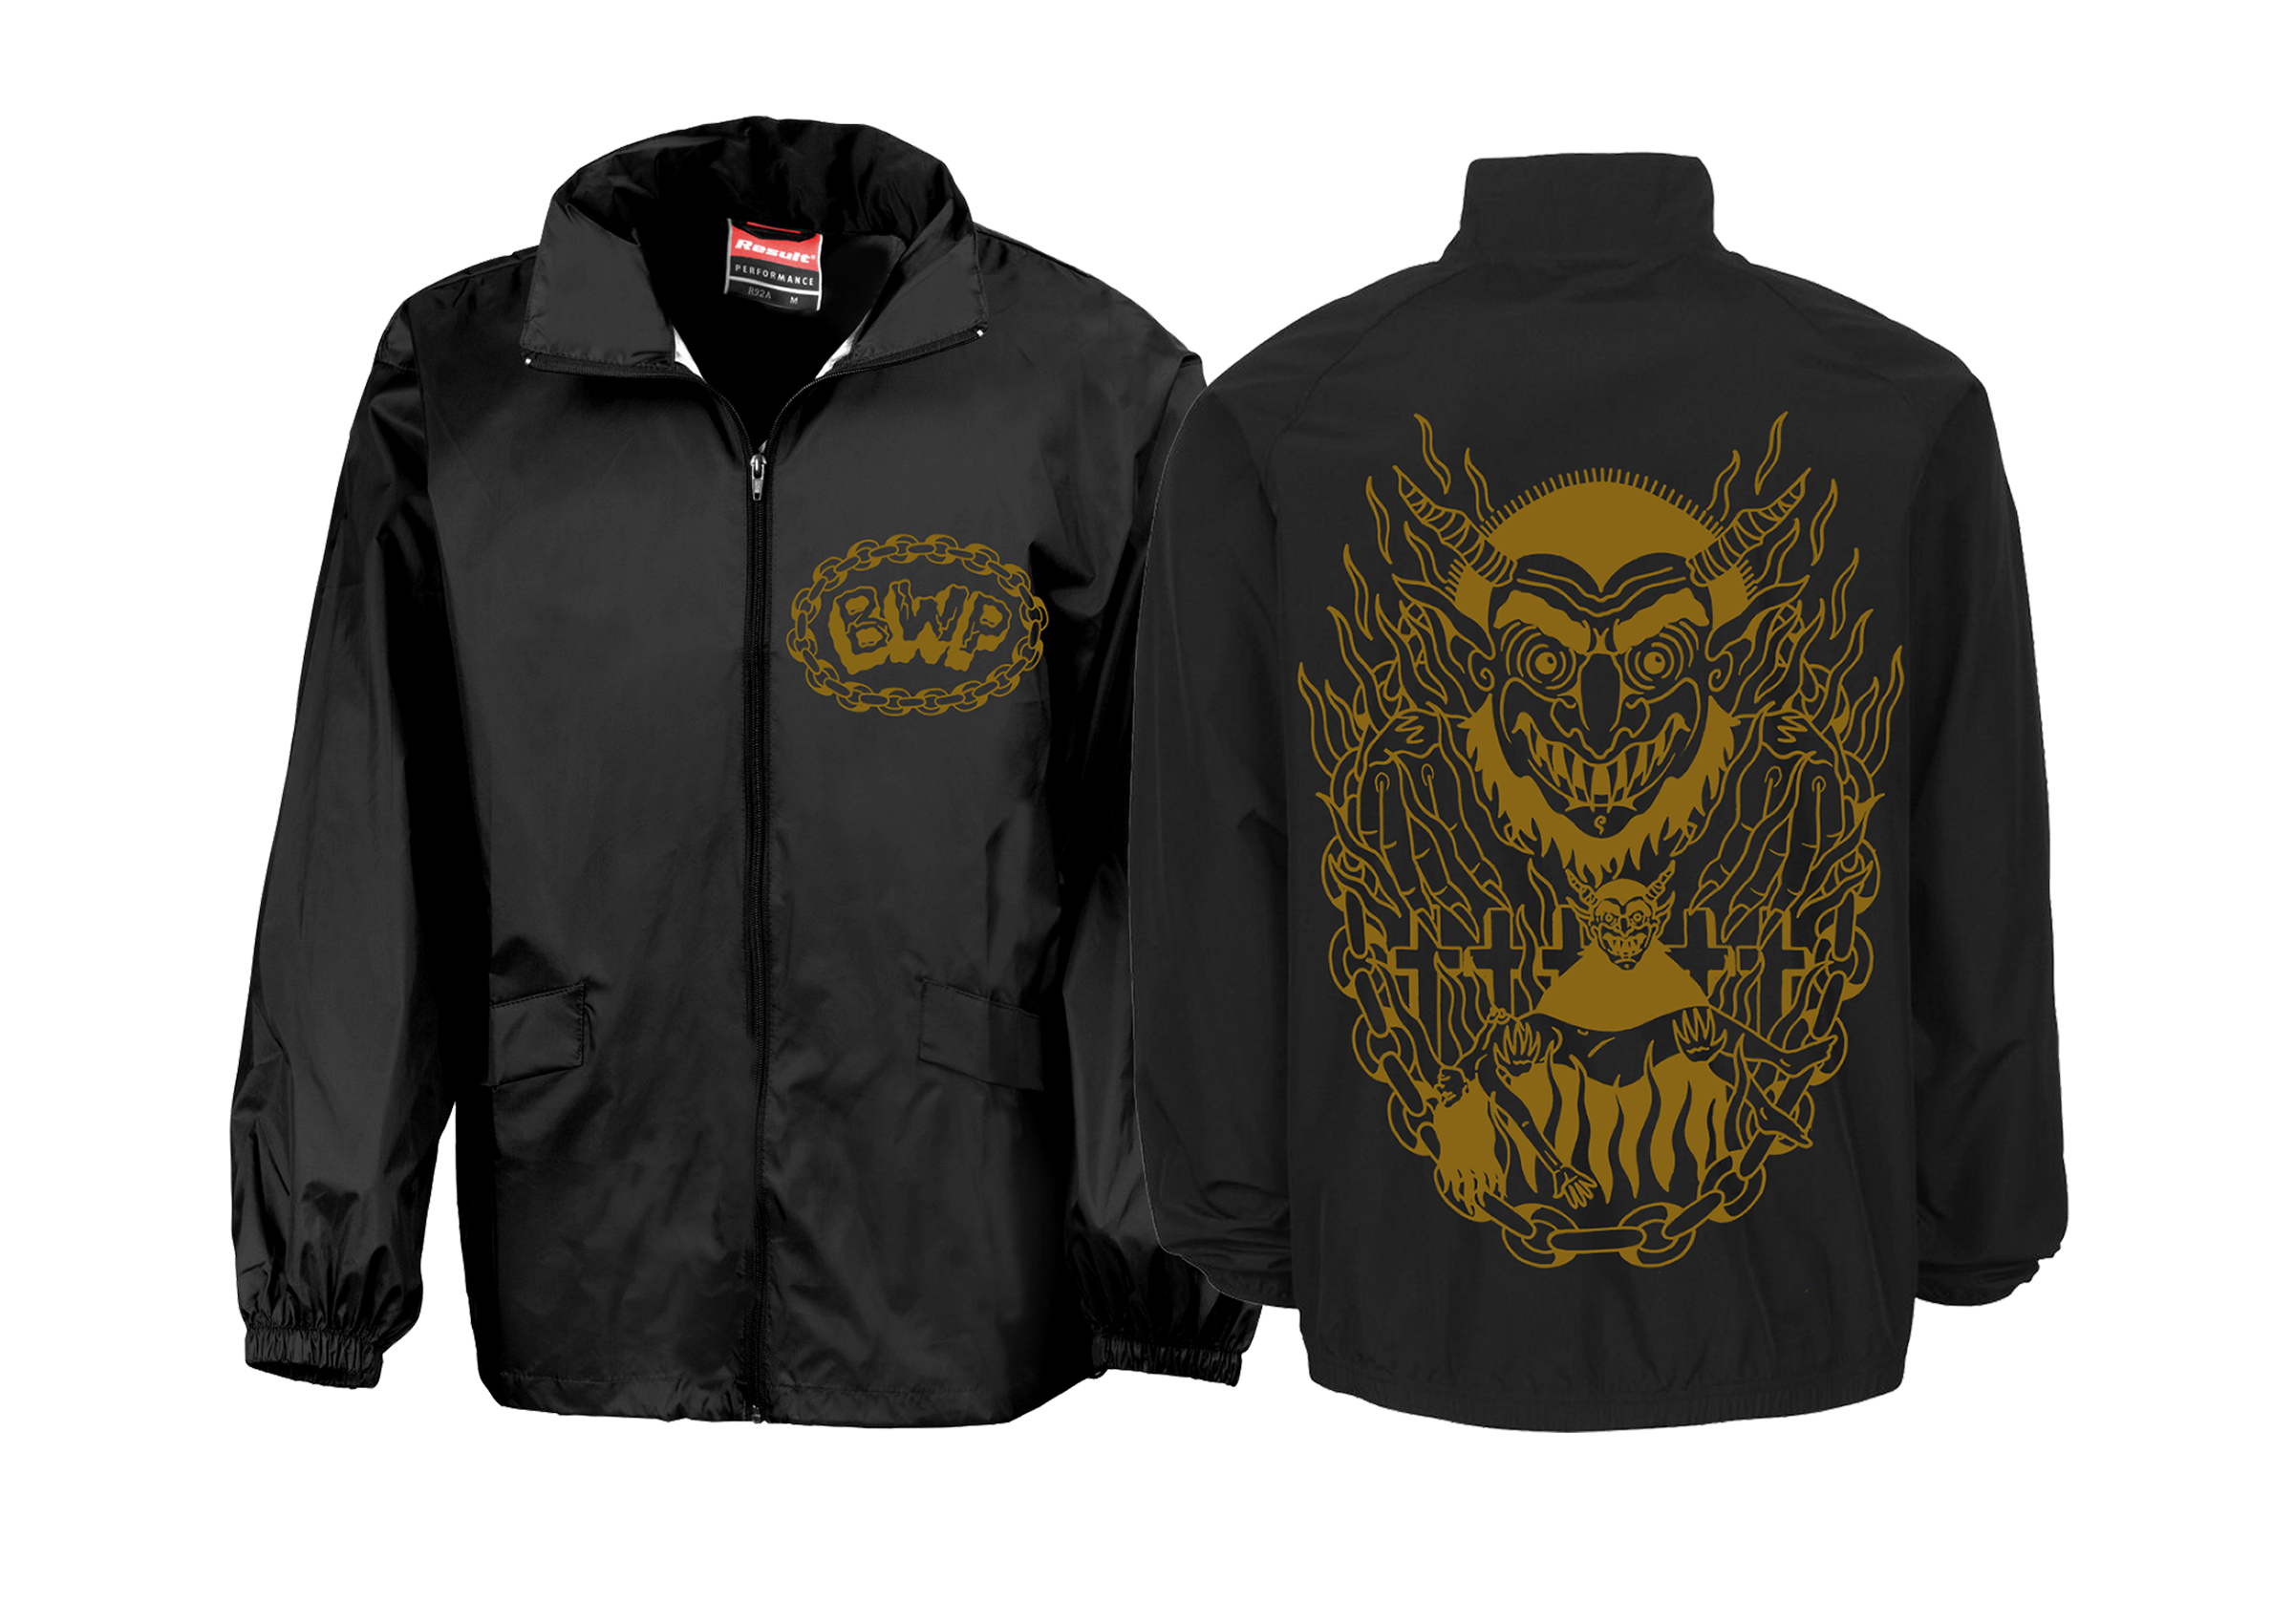 Brutality Will Prevail - In Dark Places windbreaker